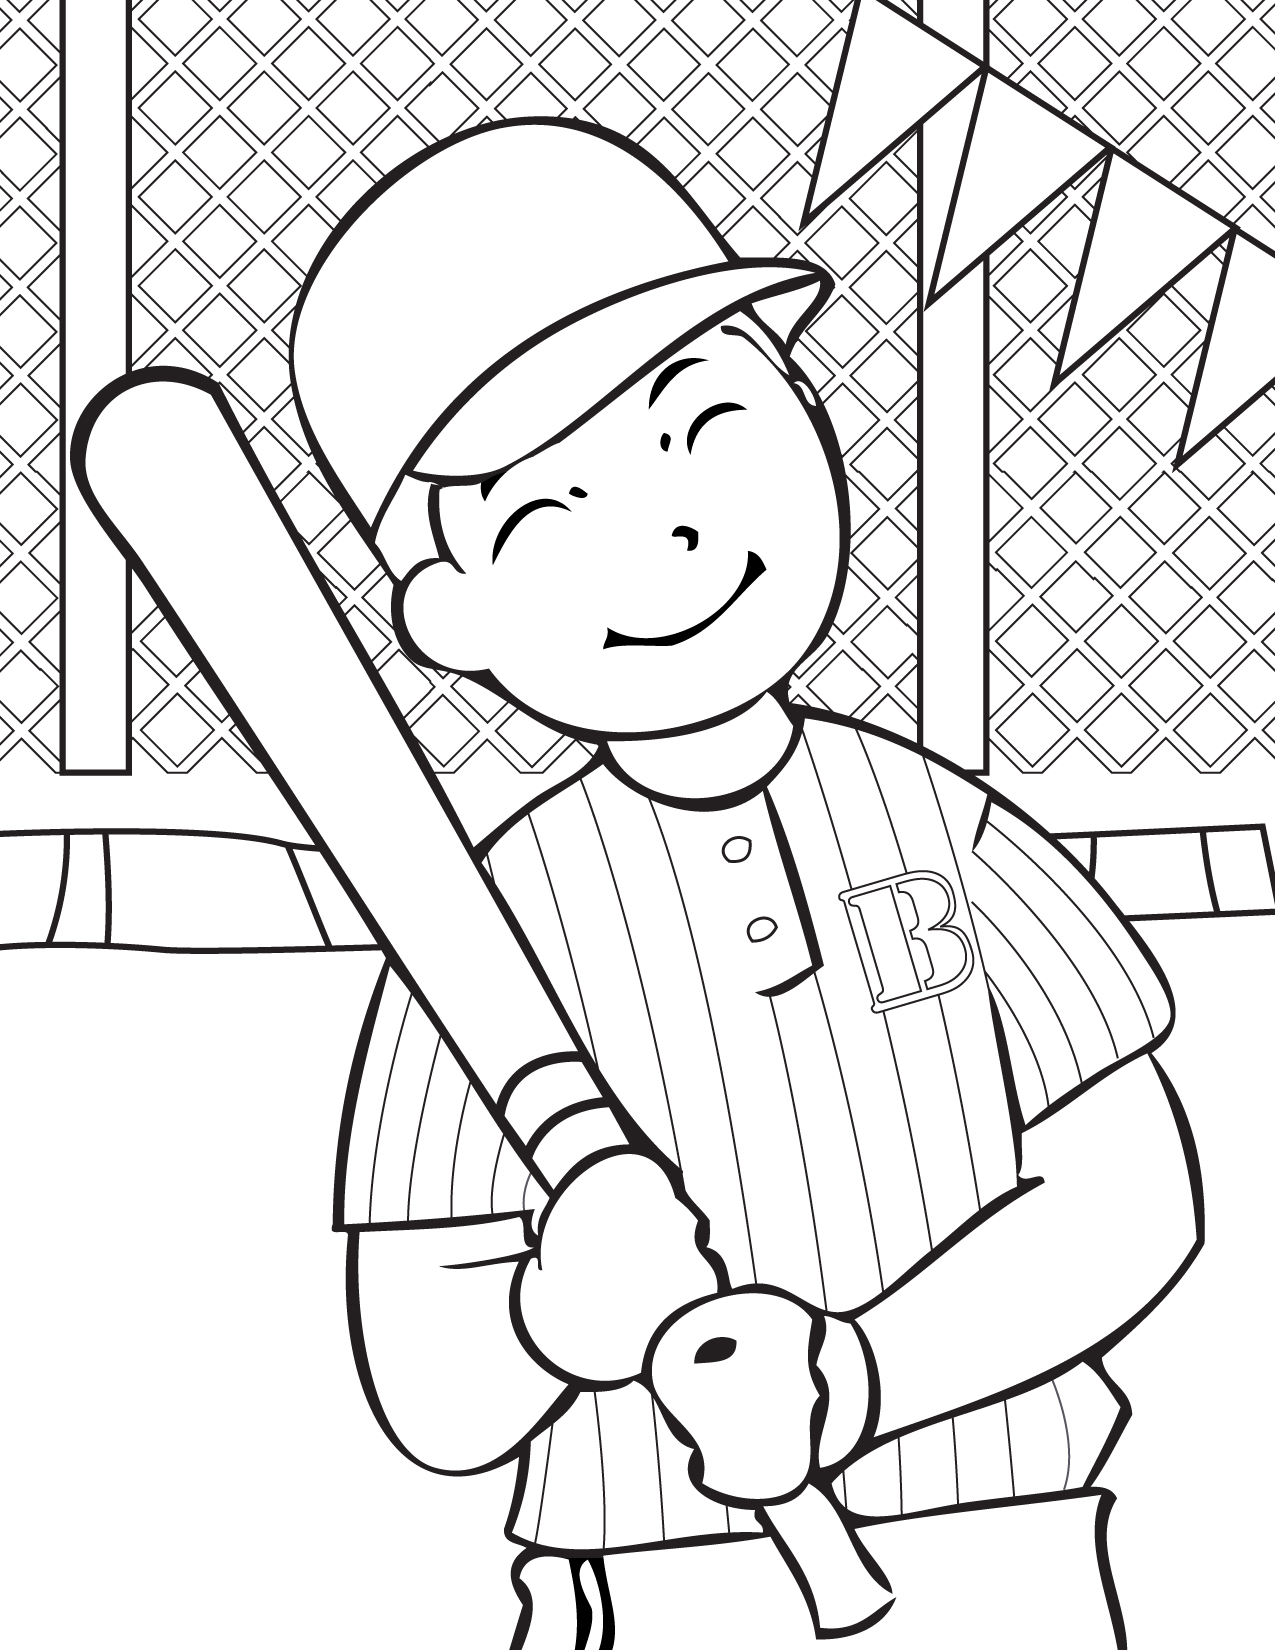 Free printable baseball coloring pages for kids best for Coloring pages